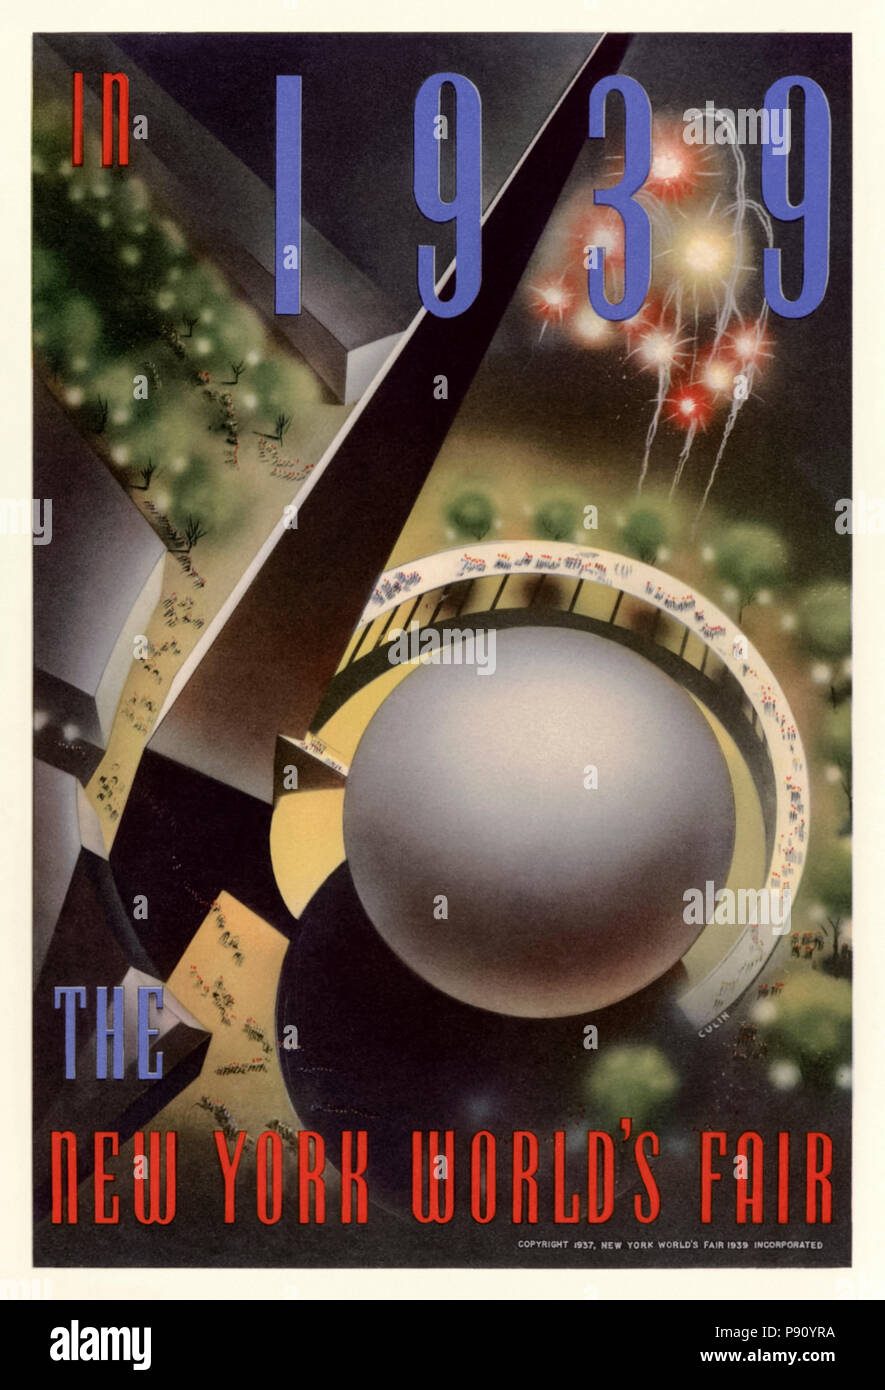 'The New York World's Fair in 1939'  poster by Nembhard N. Culin (1908-1990) published in 1937 showing an aerial view of the Trylon and Perisphere which formed the center piece of the International Exposition that took place from 30 April 1939  until 31 October 1940 in Flushing Meadows in New York City. See more information below. - Stock Image